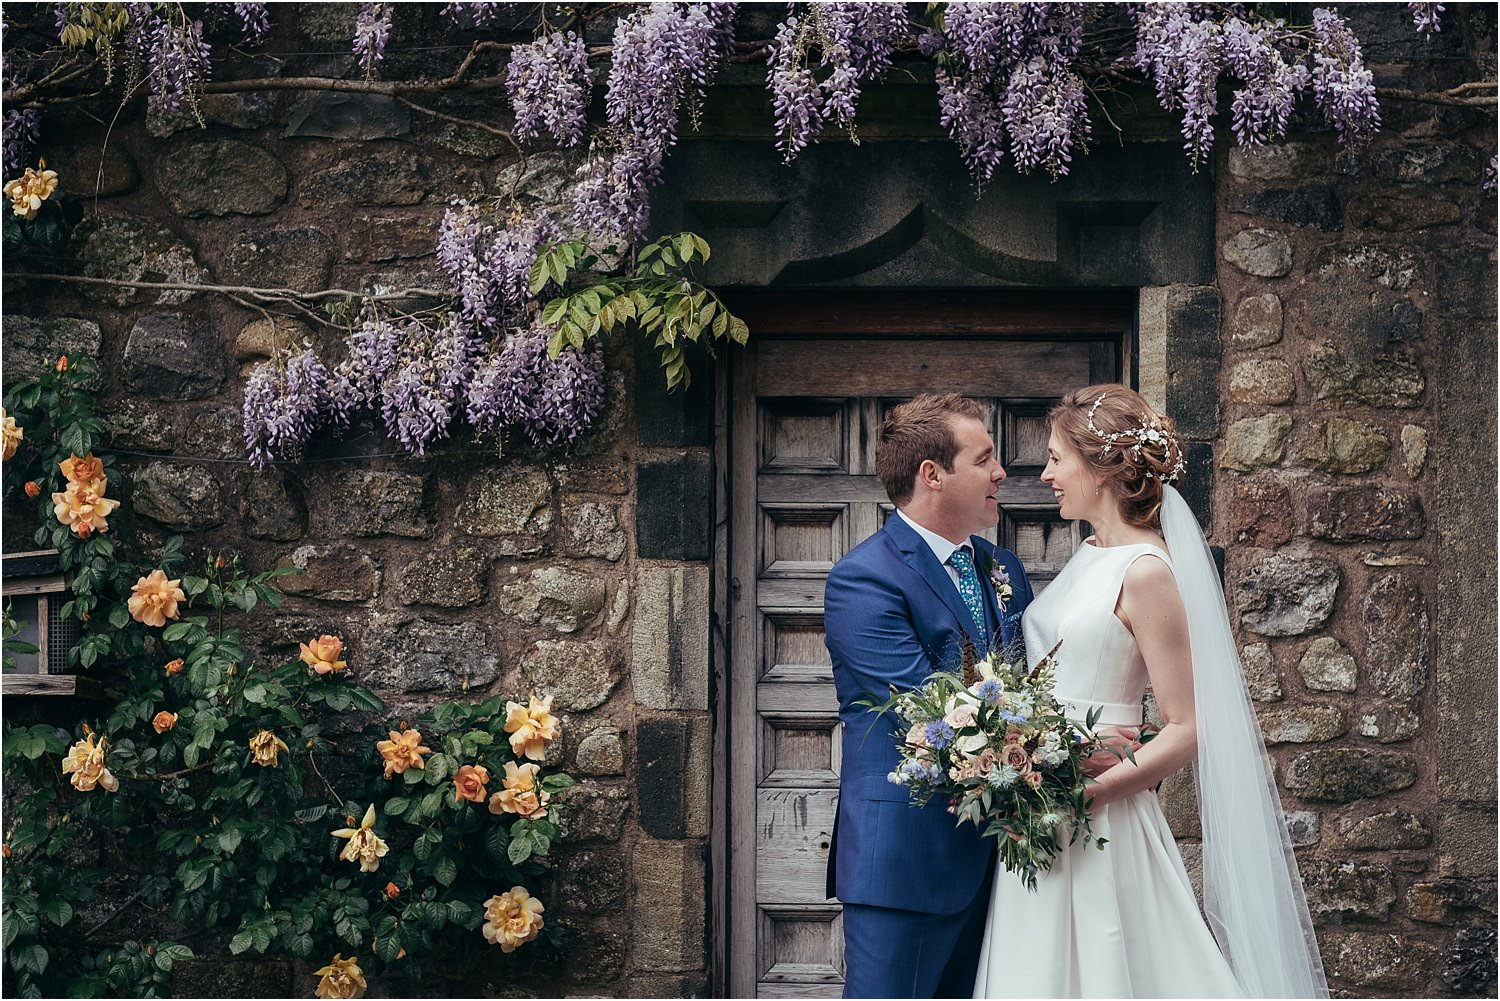 Lancashire bride and groom with bridal bouquet by The Flower Shop of Clitheroe